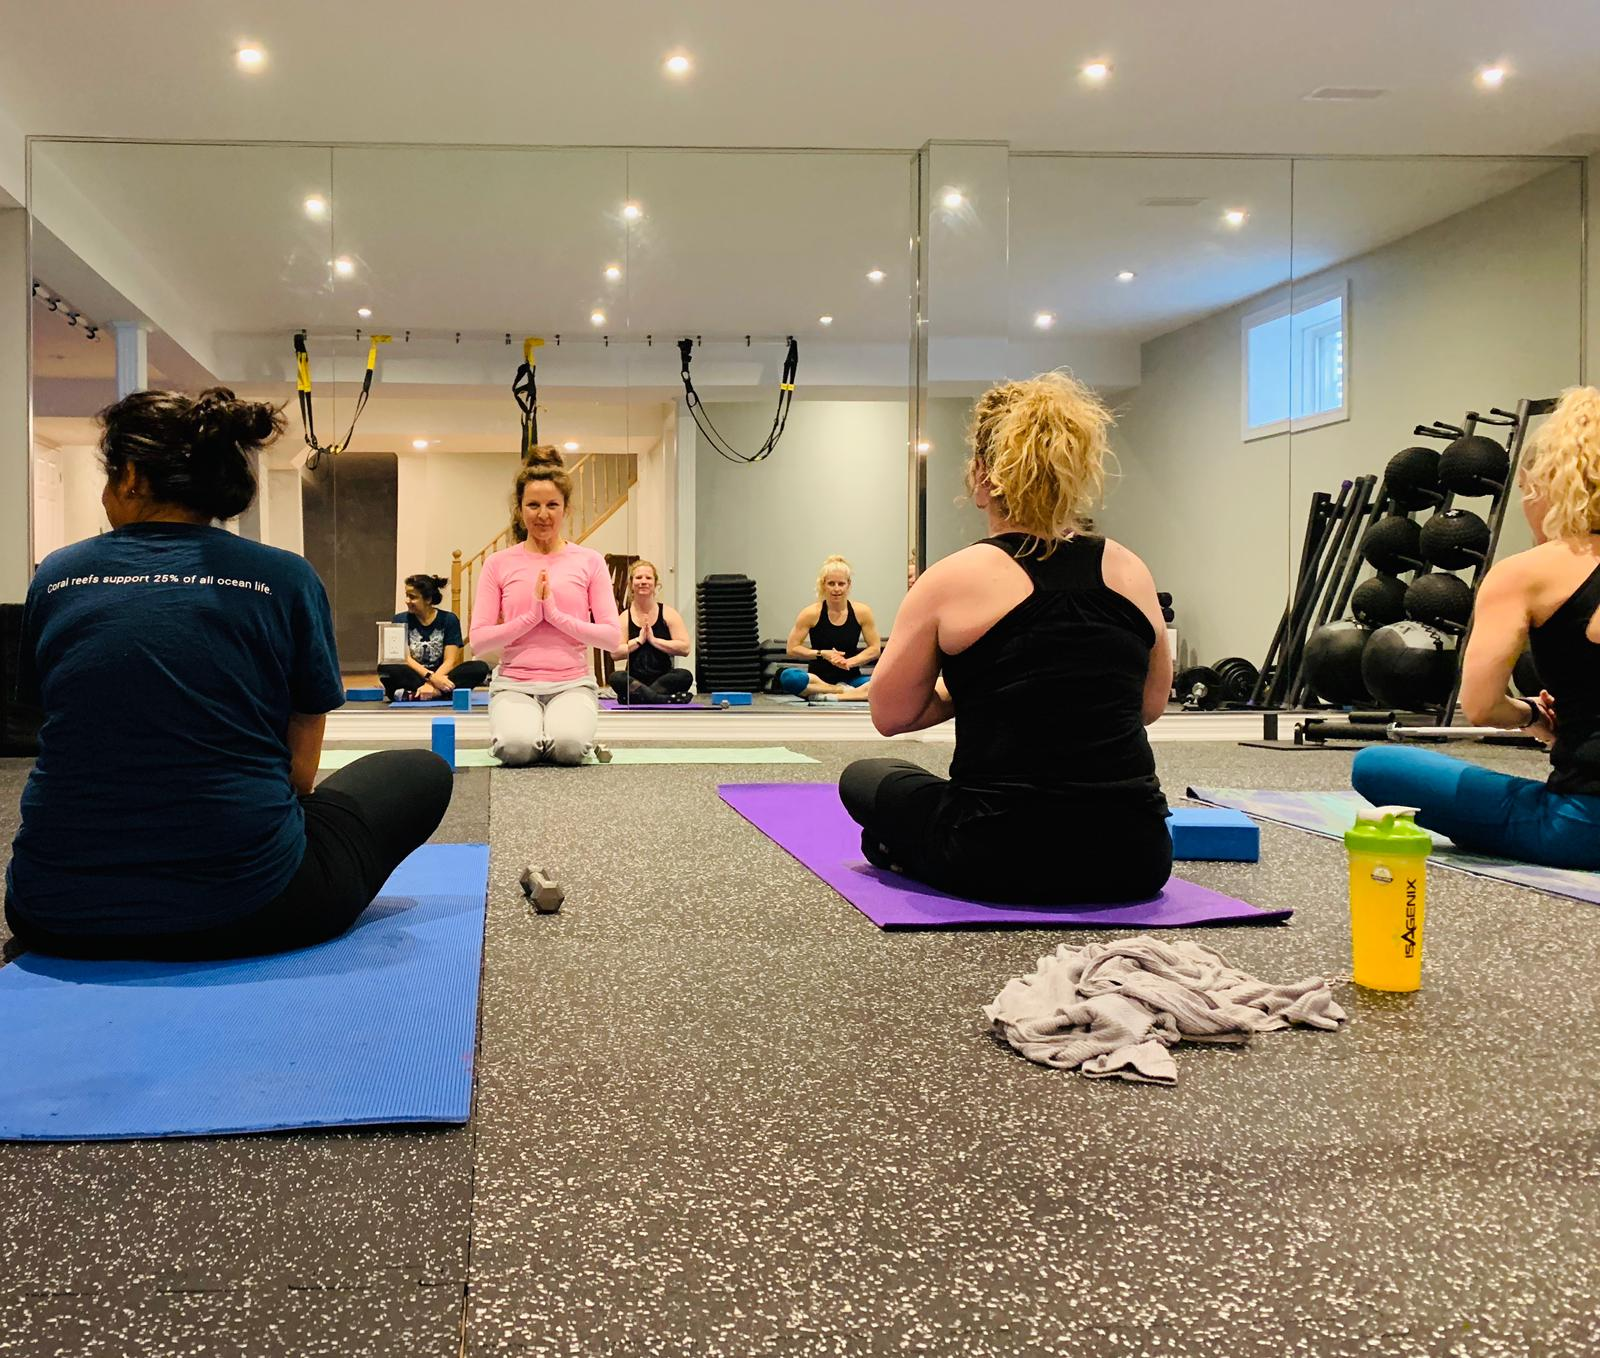 Yoga Classes (RRP $15/session) - Our newest addition to the services offered at Unionville Fitness, we now provide group Yoga sessions every Tuesday at 9:30am. Whether you're a complete beginner or an advanced Yogi, we welcome you to live better, stay fit and enjoy life with Yoga at Unionville Fitness.